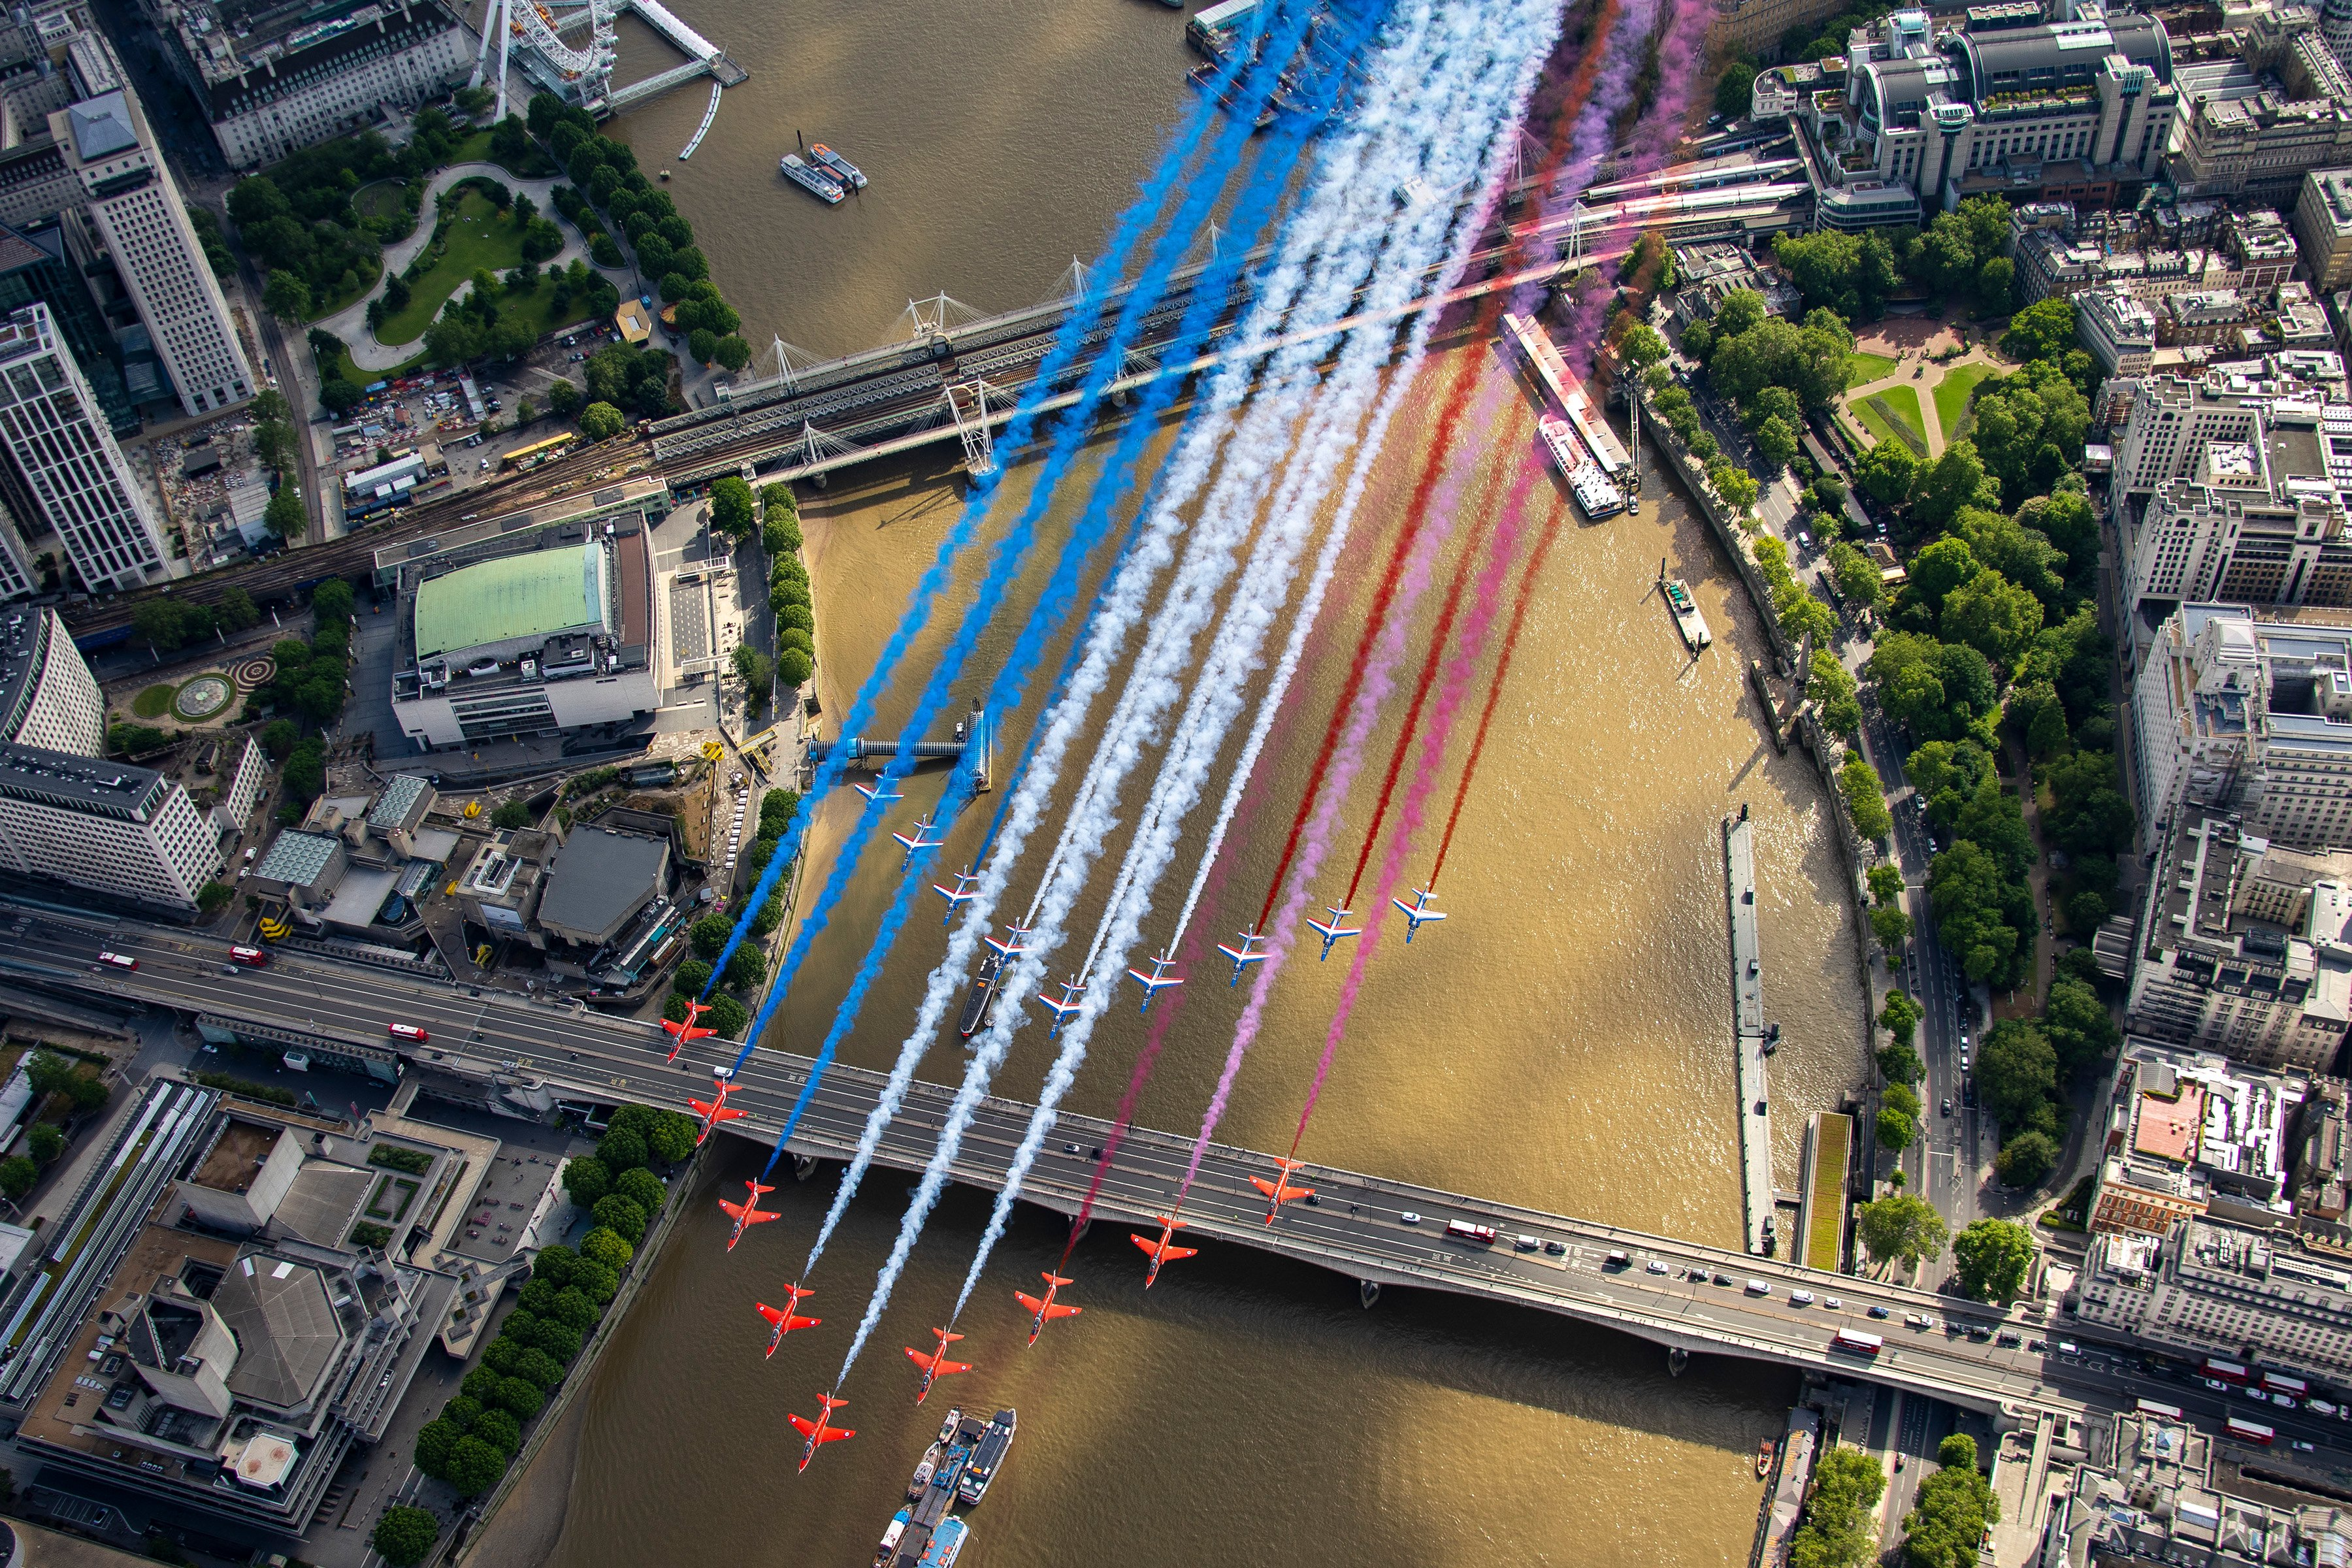 RAFAT Red Arrows and Pat de France [MoD Crown Copyright - Dave Jenkins]